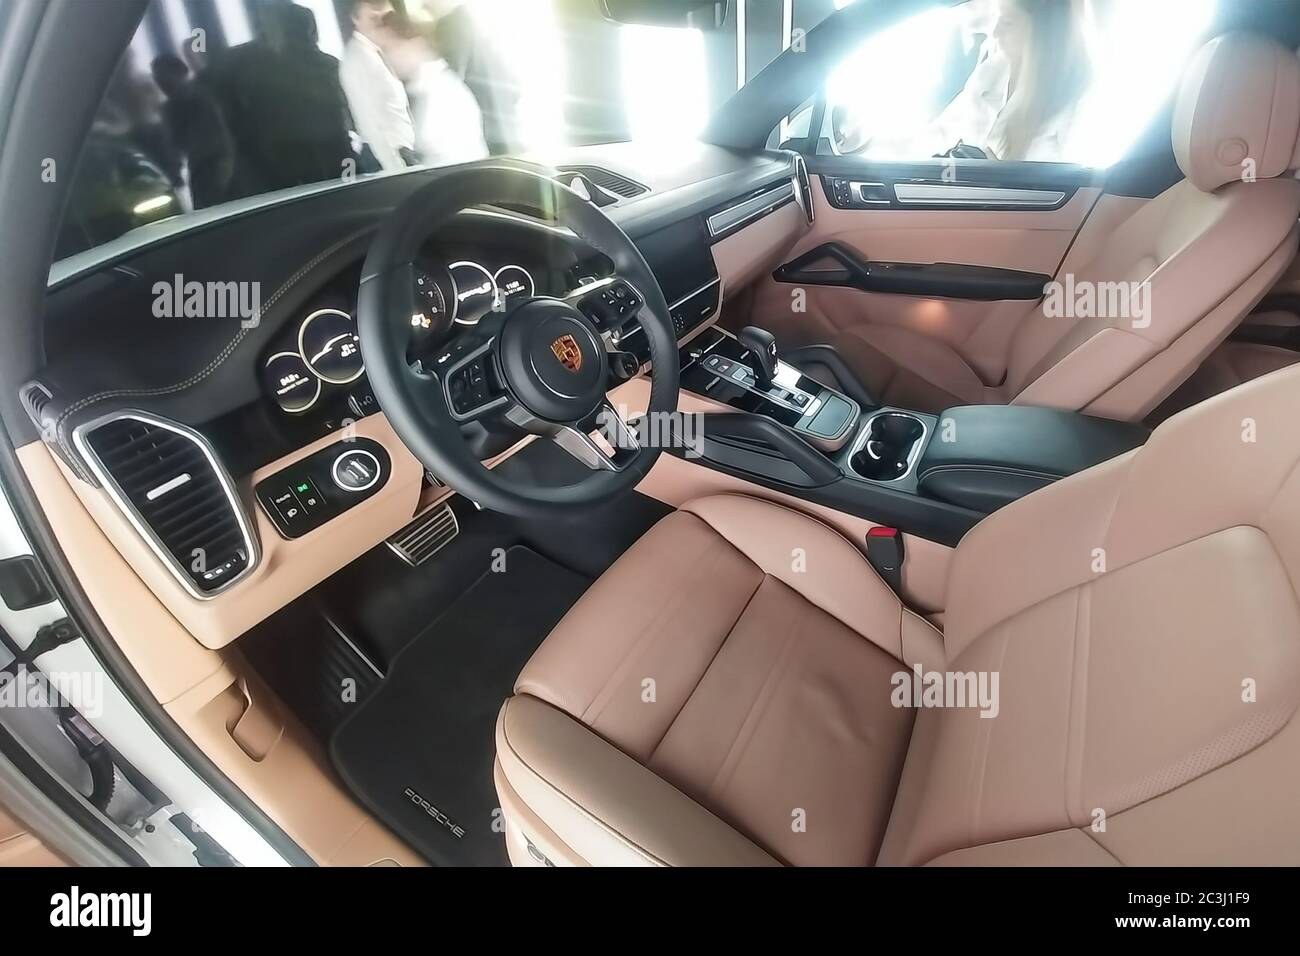 Moscow Russia May 09 2019 Beige And Black Luxury Interior Of Completely New White Porsche Cayenne In A Presentation Box Stock Photo Alamy